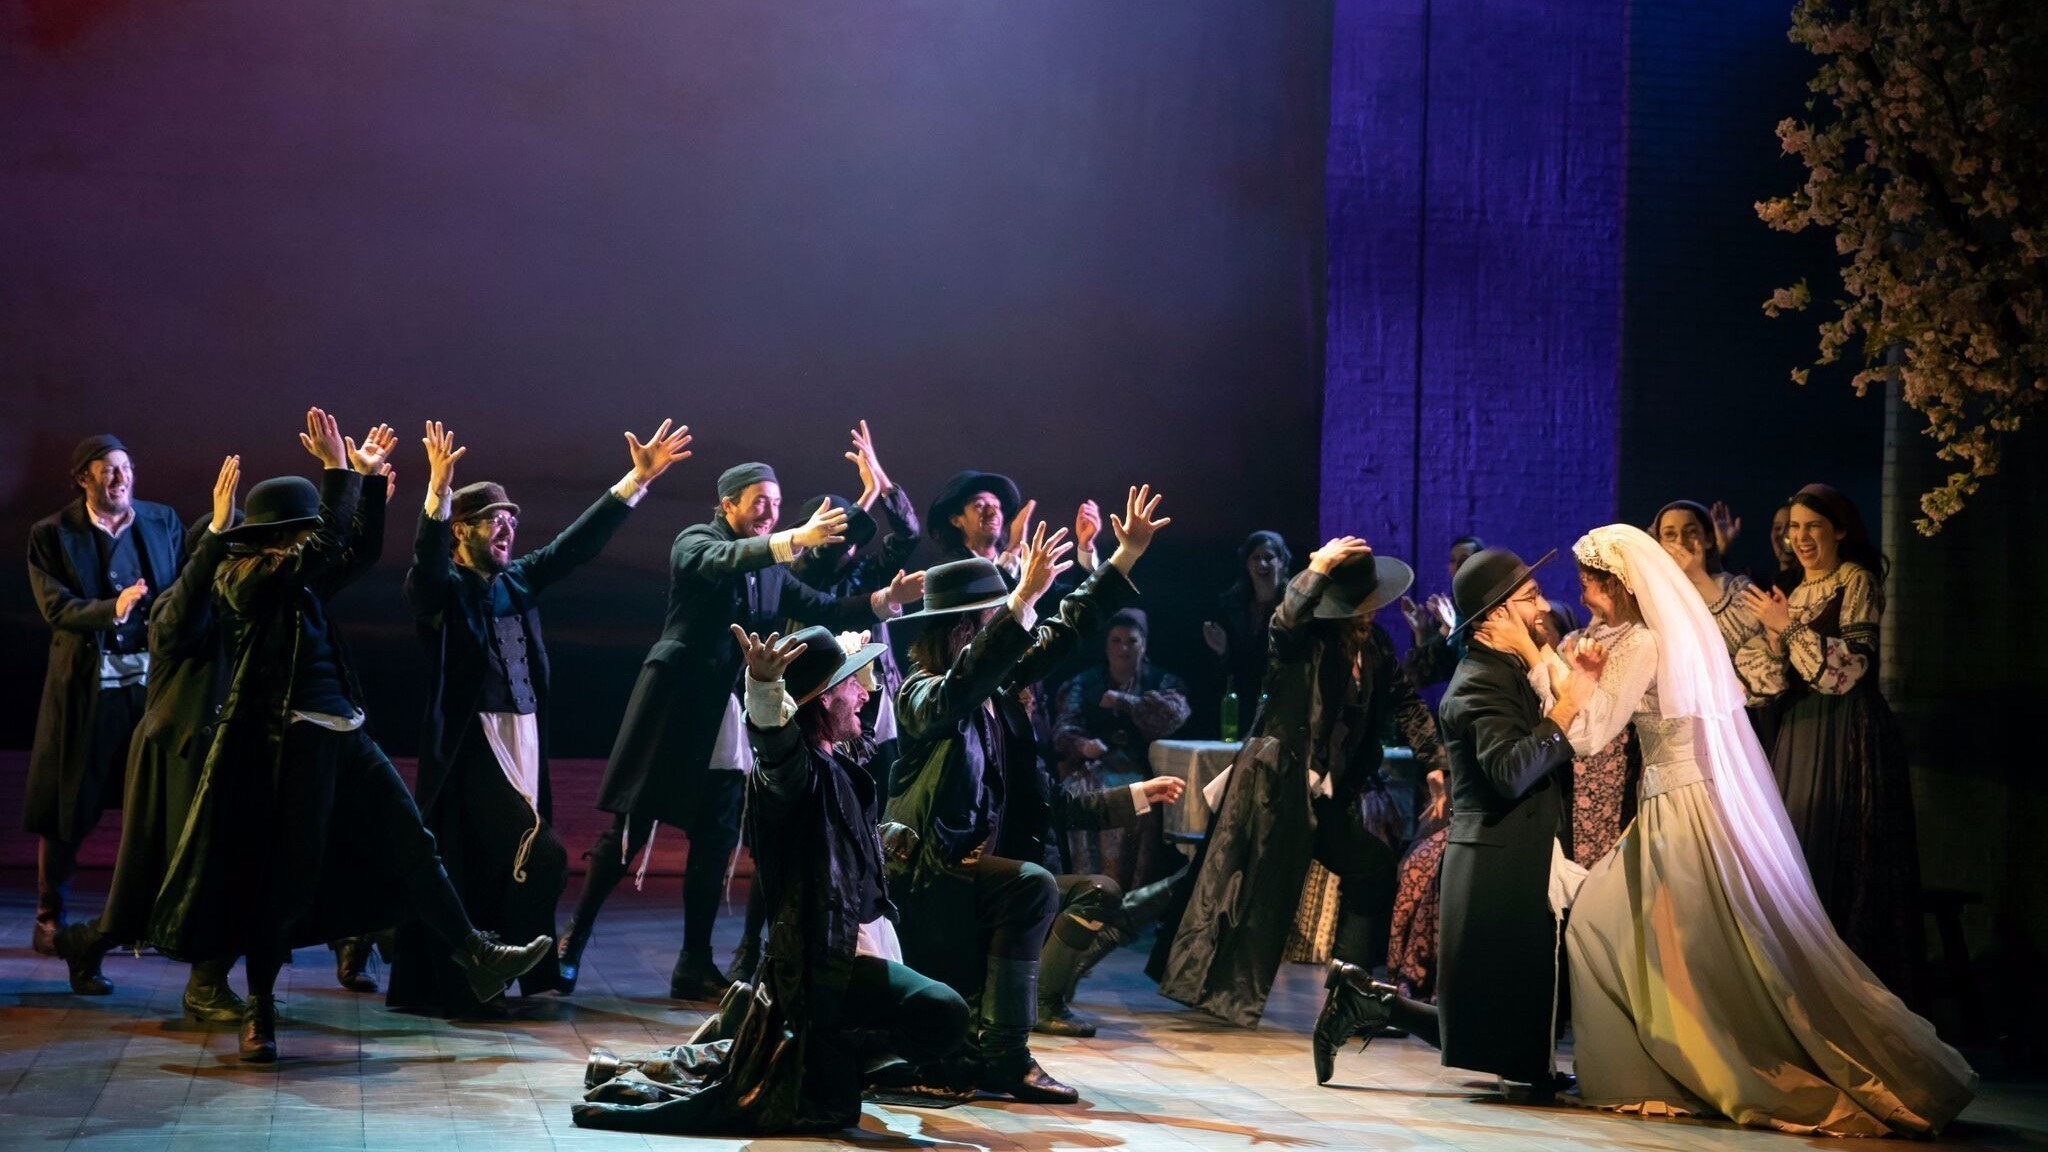 Immigrant Themes Resonate In Fiddler On The Roof At The